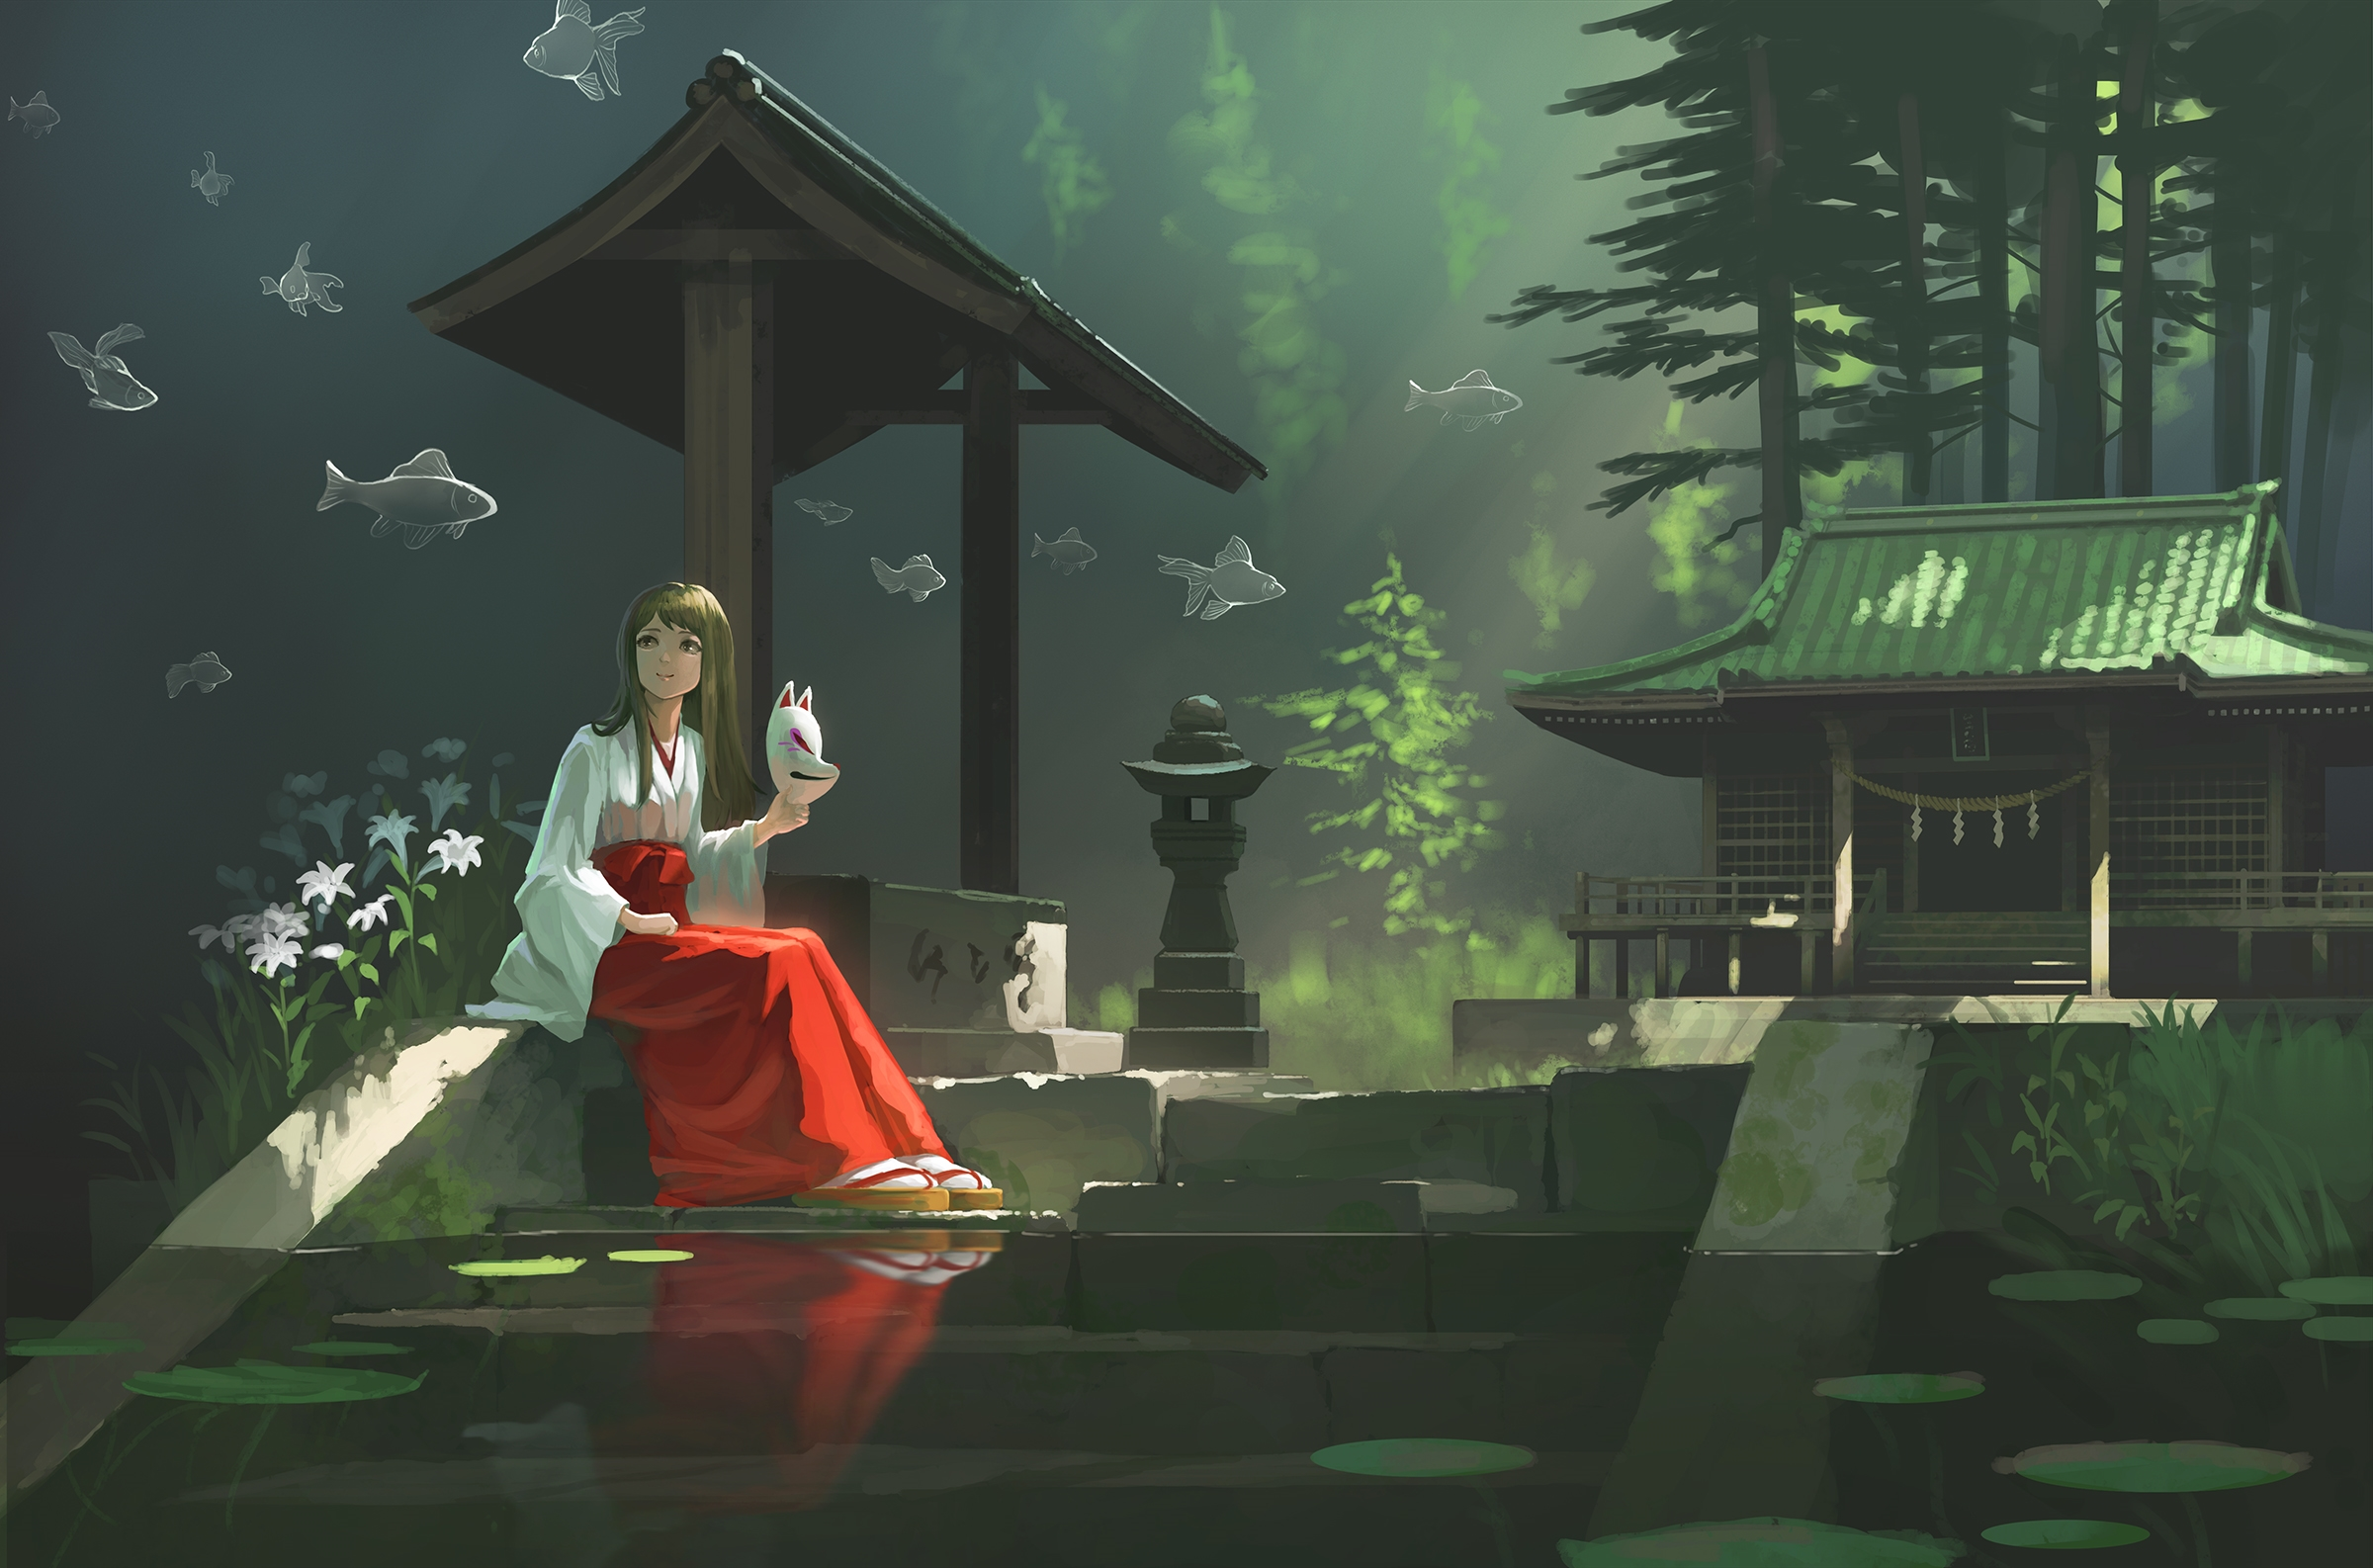 Anime 2400x1586 women dark hair long hair portrait looking away smiling mask artwork surreal digital art illustration painting 2D miko temple forest trees water flowers water lilies fish original characters fantasy art fox mask anime girls